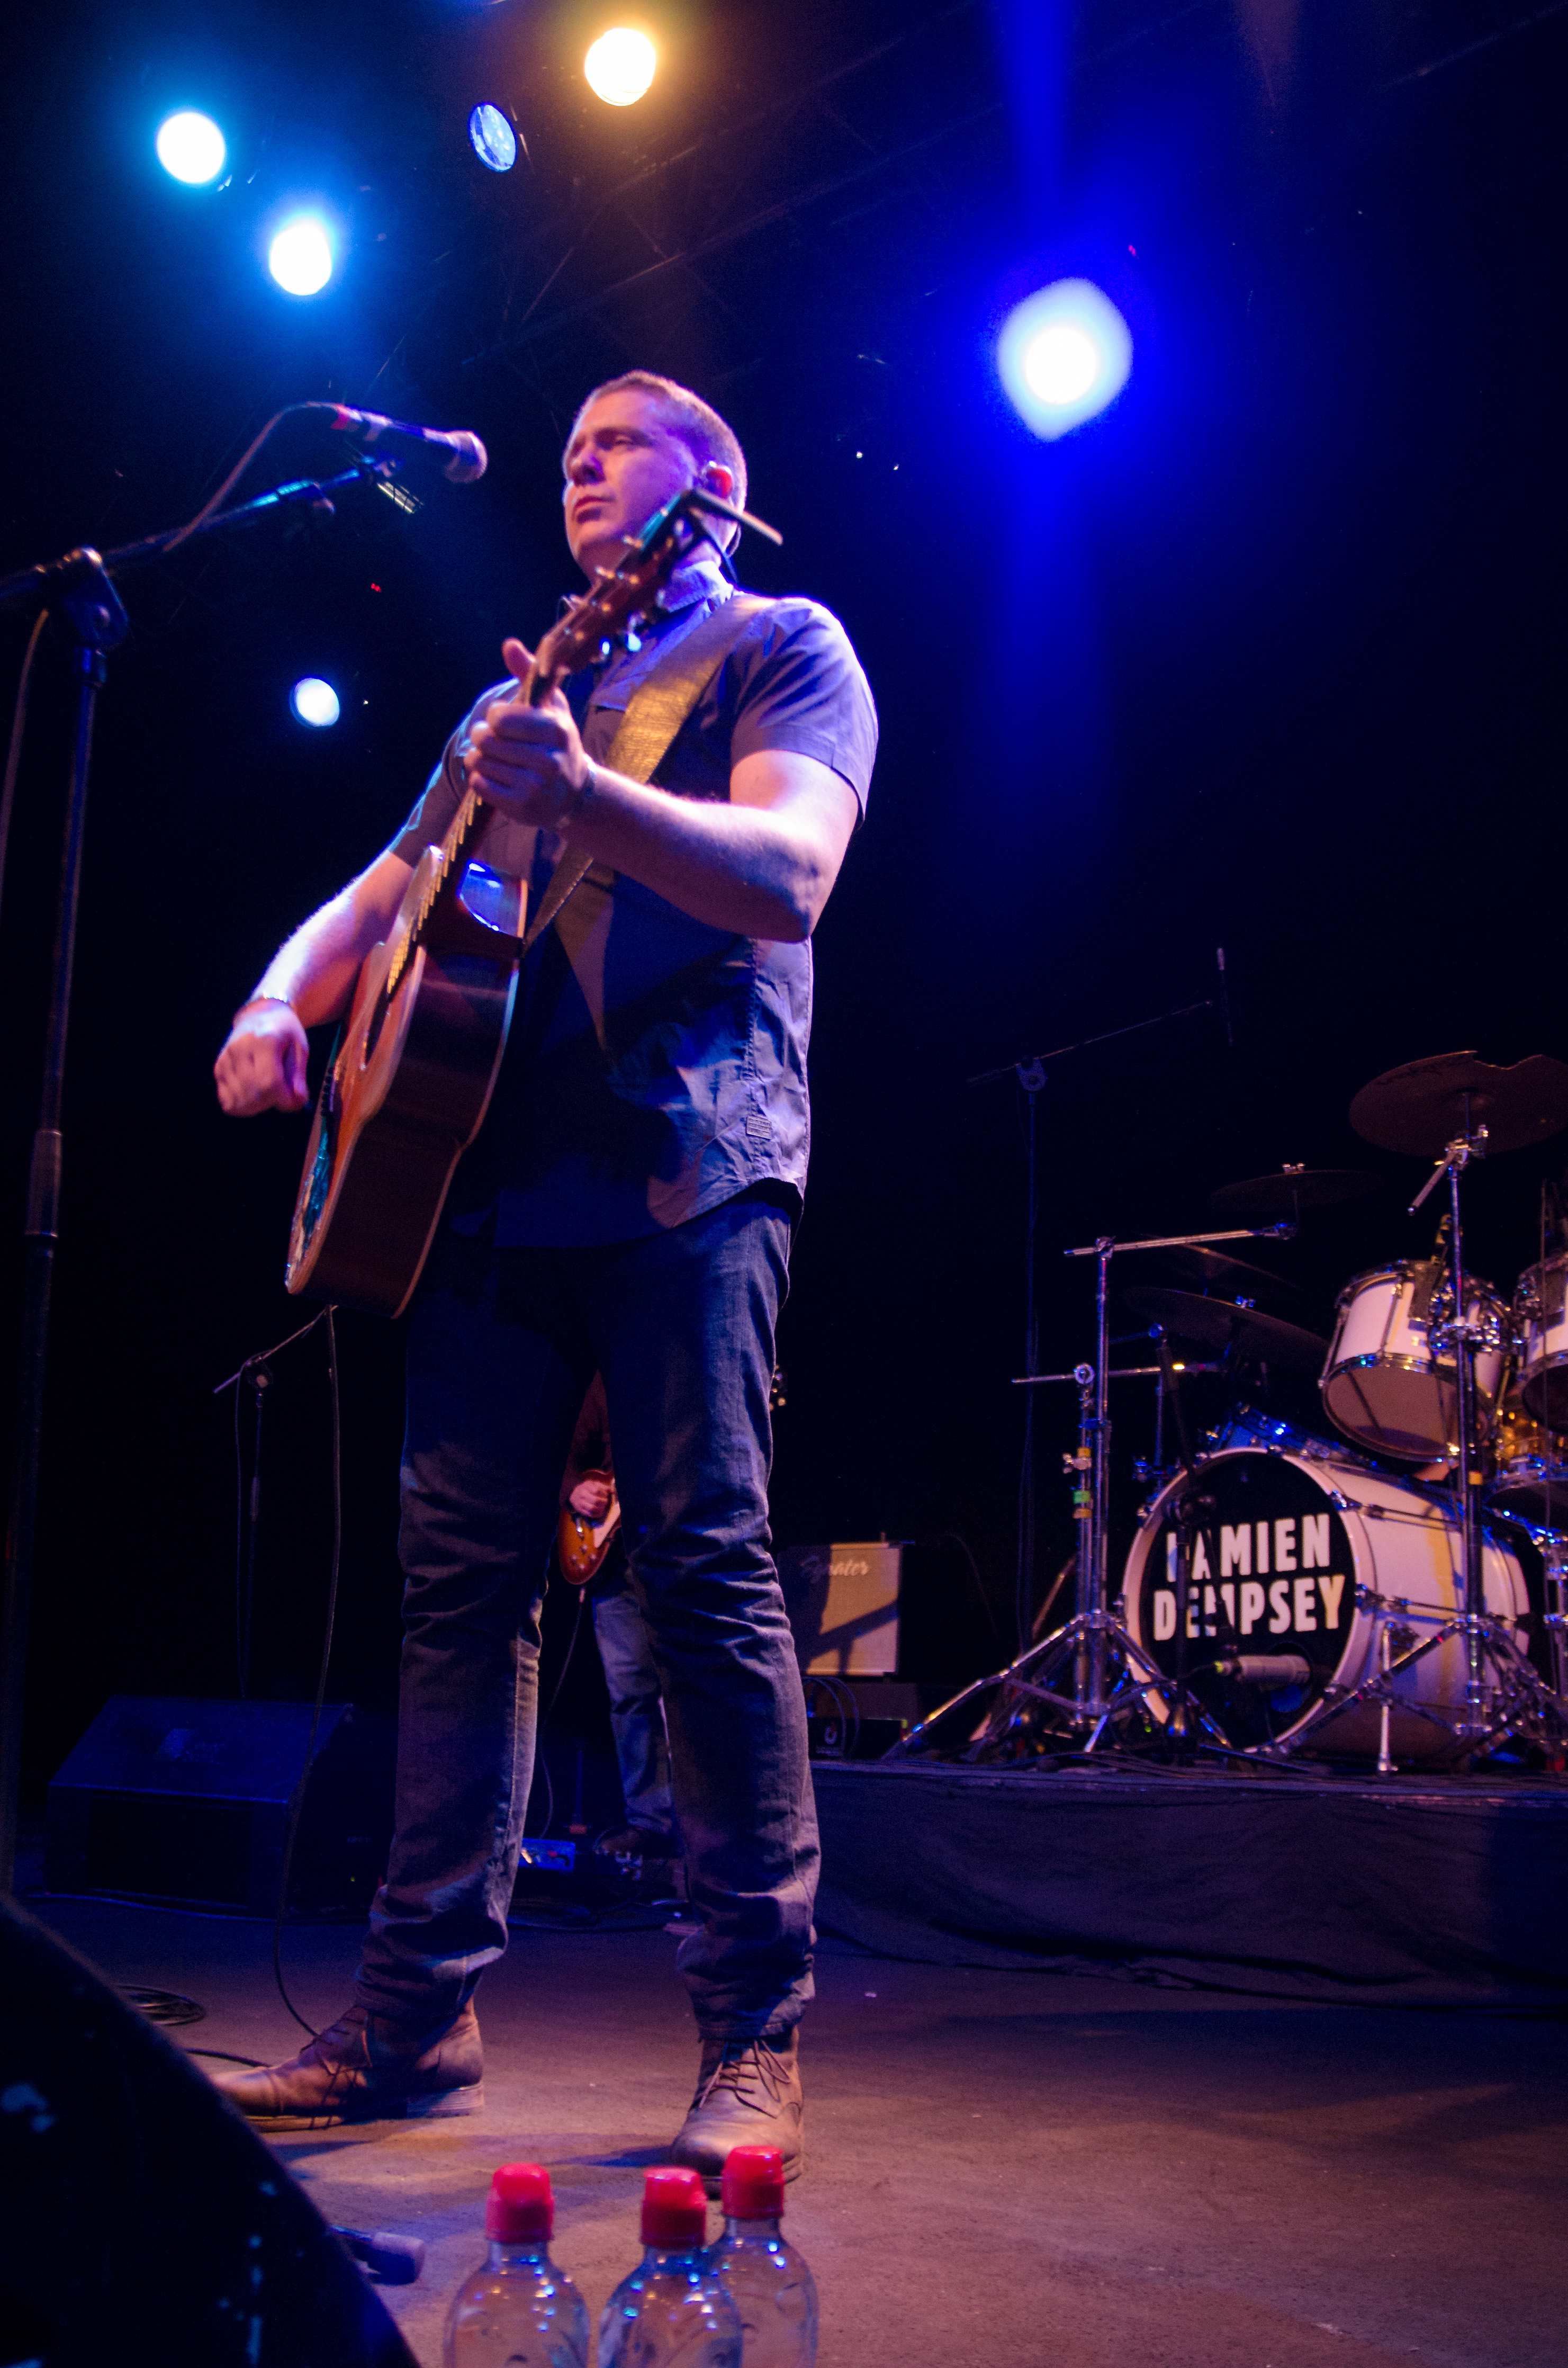 damien-dempsey-at-vicar-street-by-sean-smyth-9-12-15-6-of-34